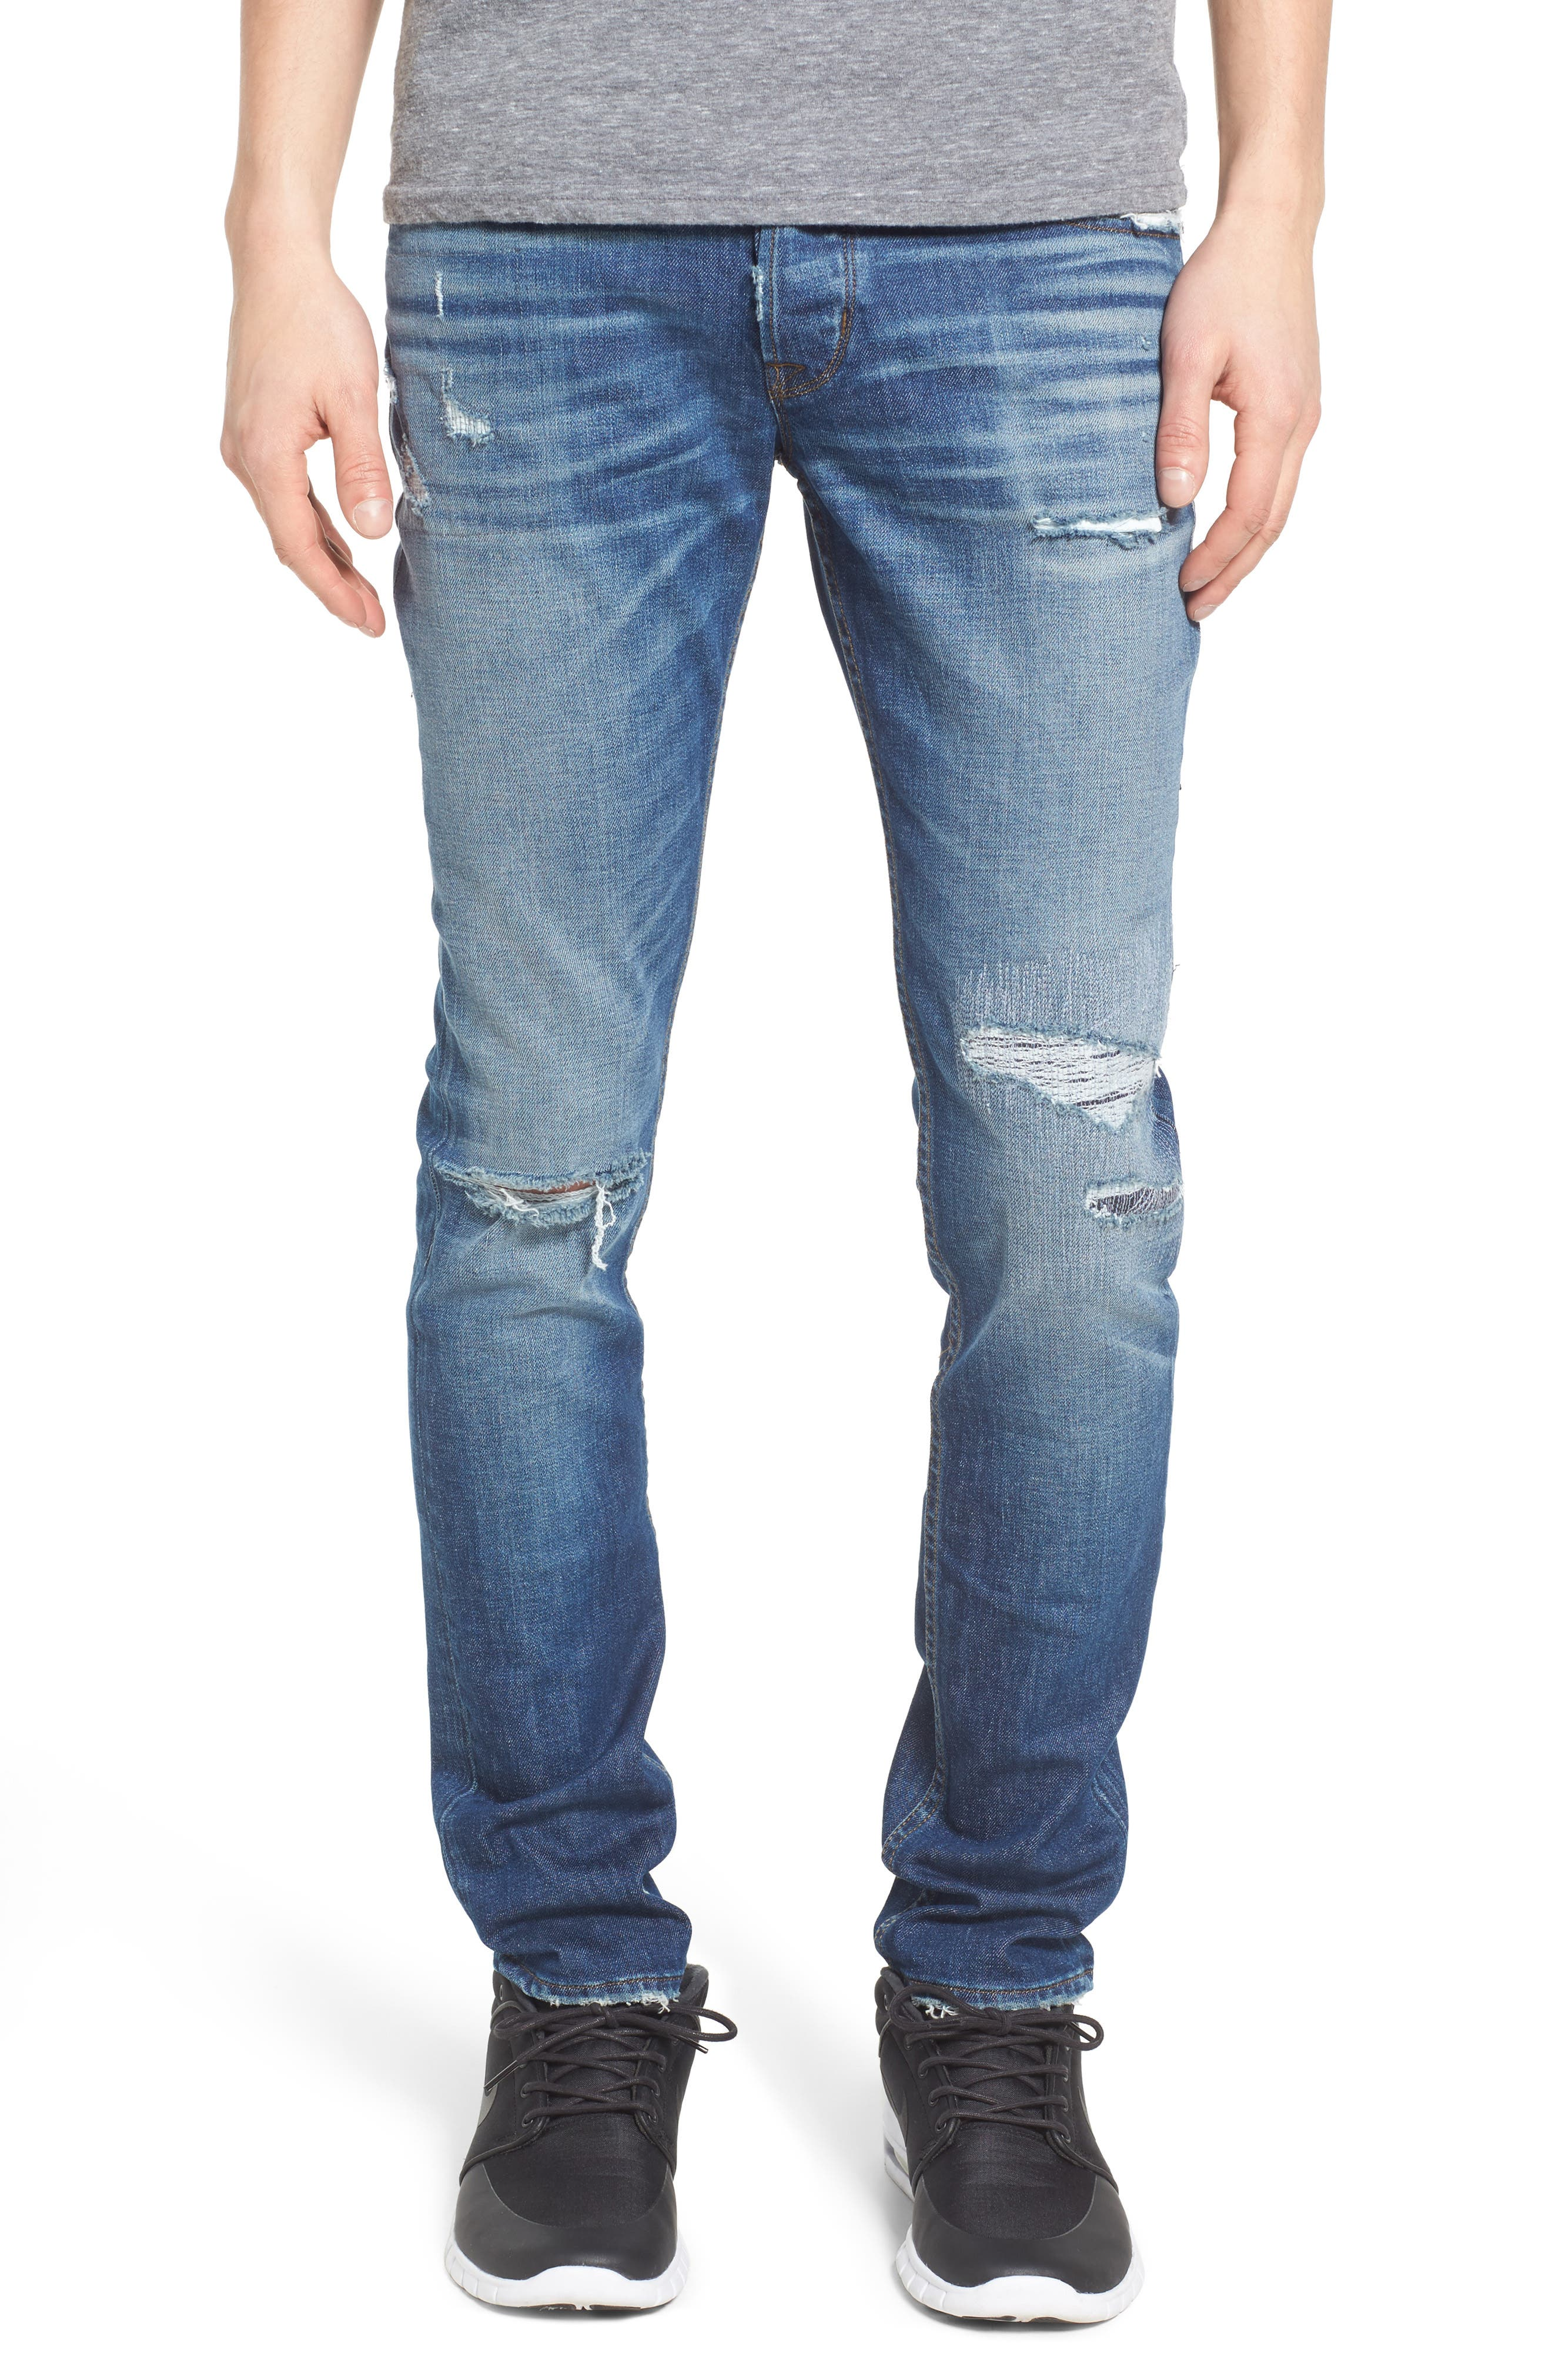 Main Image - Hudson Jeans Axl Skinny Fit Jeans (Aim)